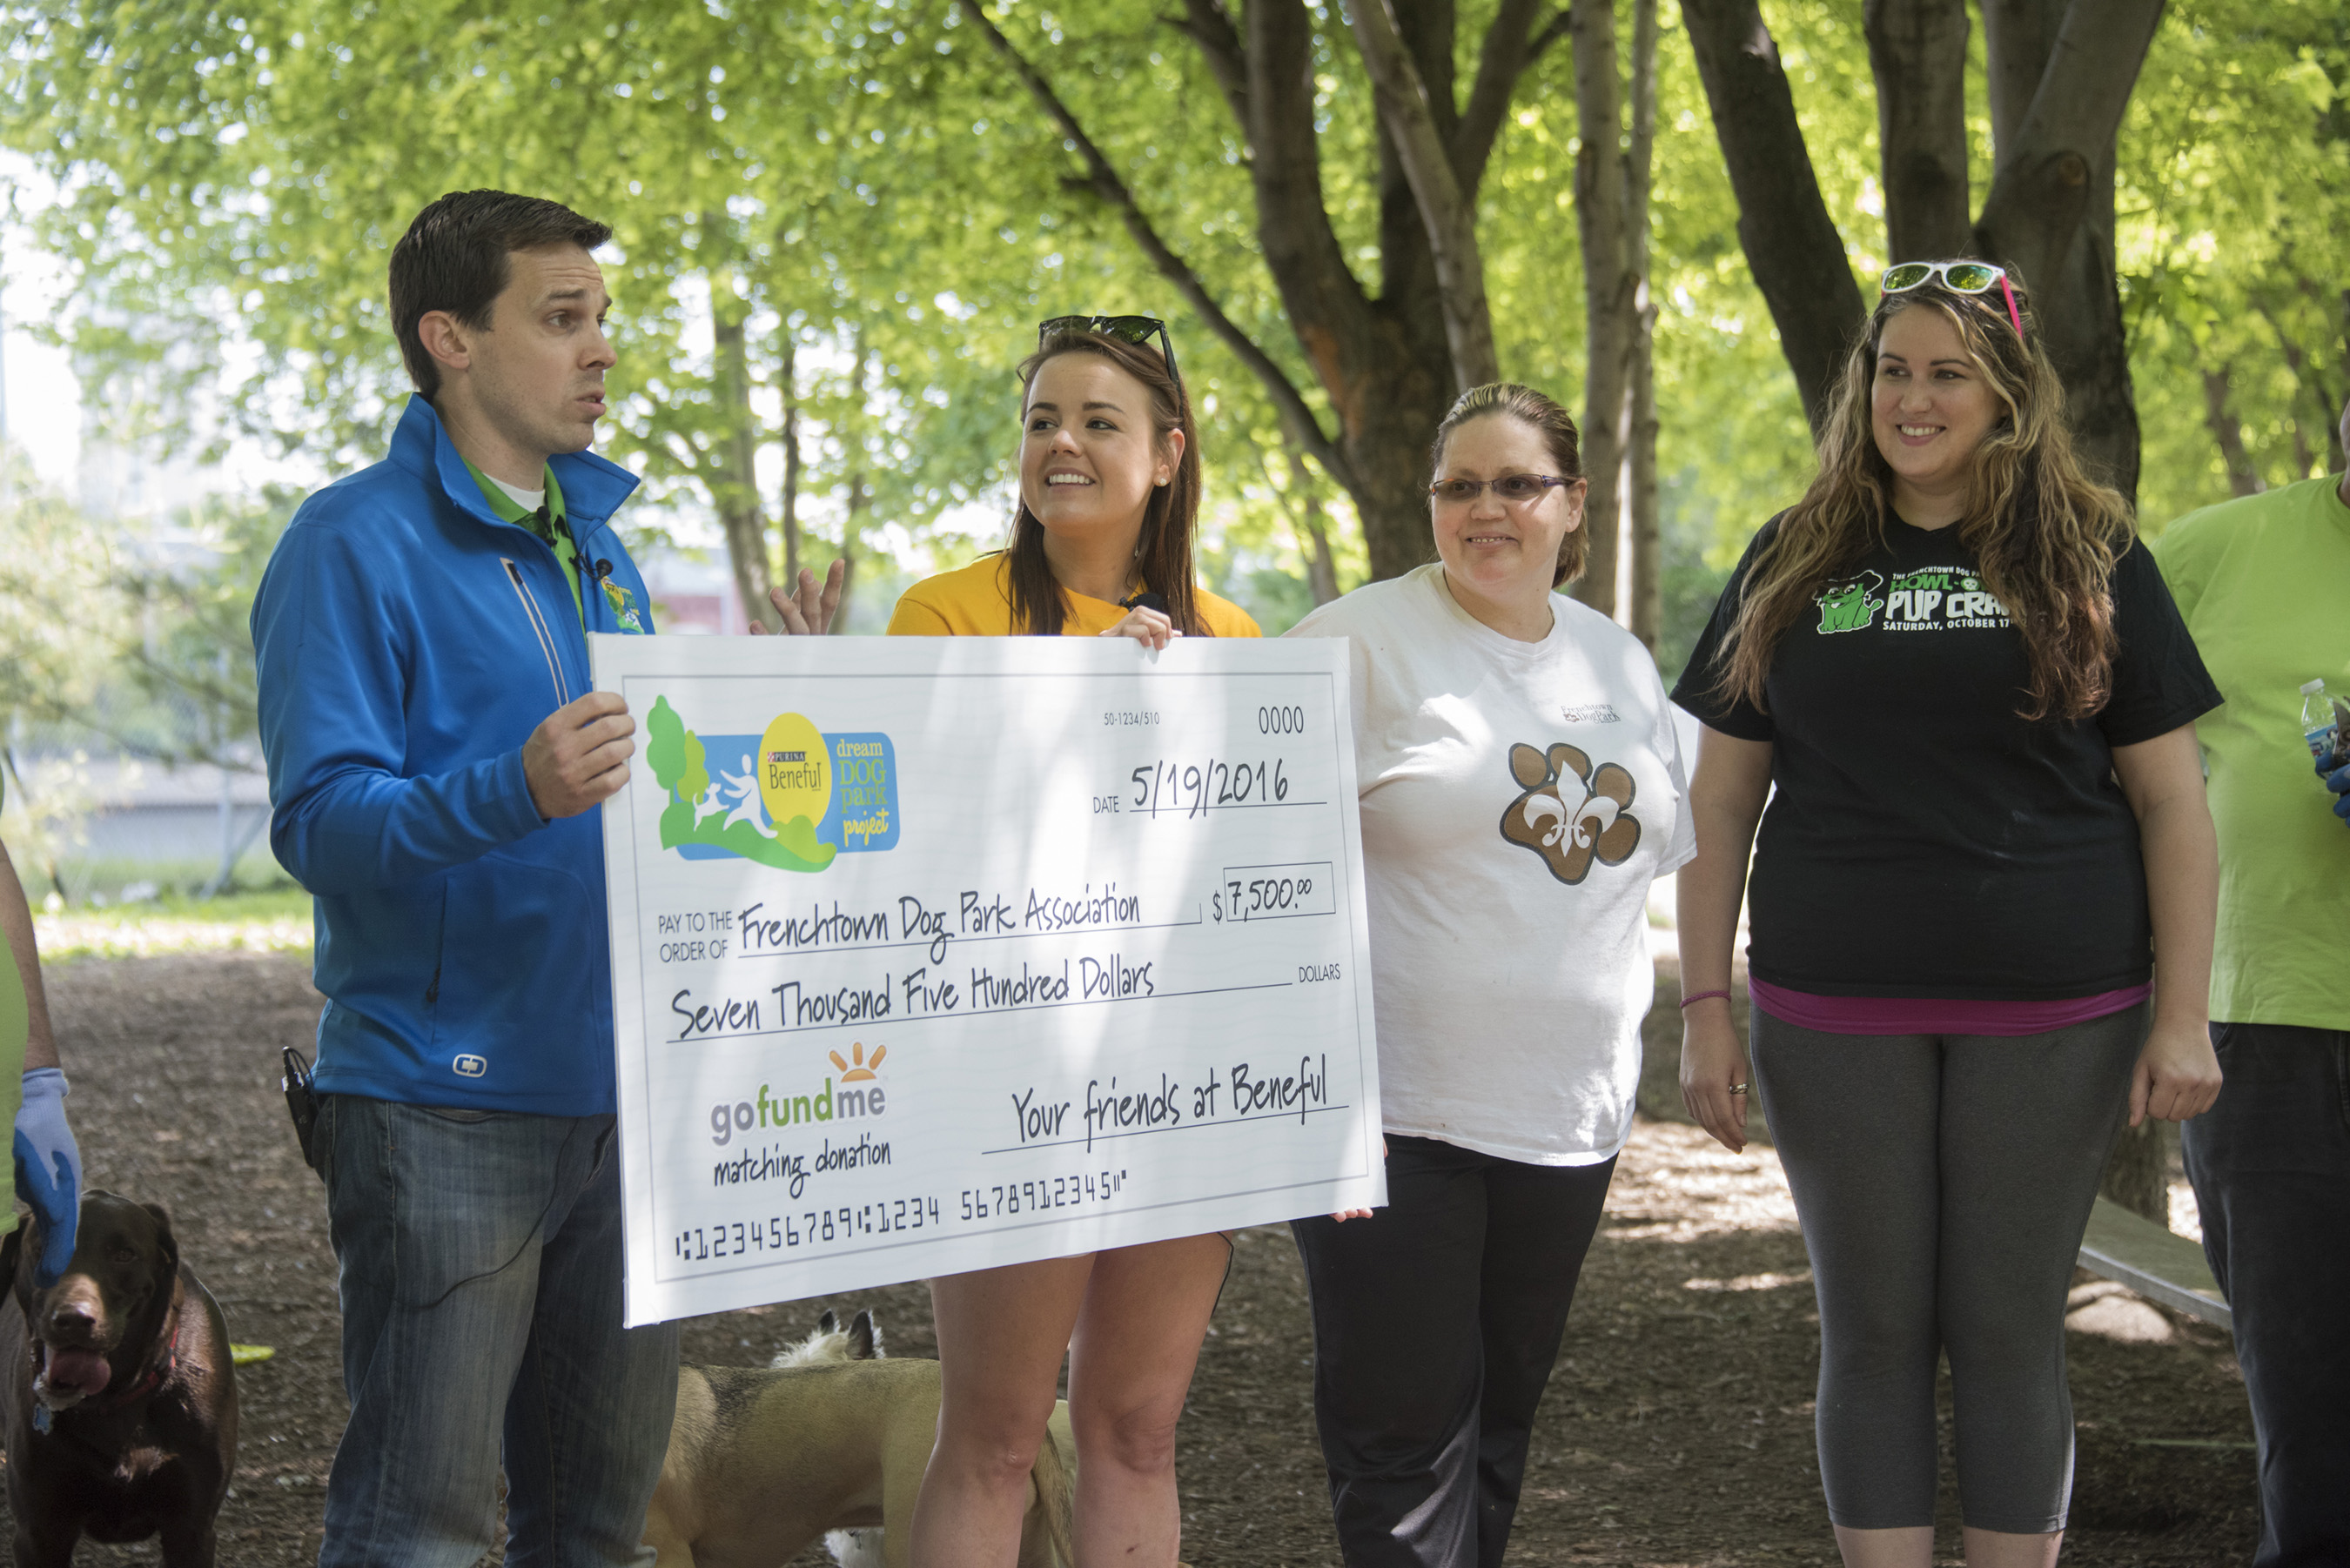 Dozens of volunteers participated in the first Beneful Dream Dog Park Project service day of 2016 at the Frenchtown Dog Park in St. Louis, MO on May 19, 2016.